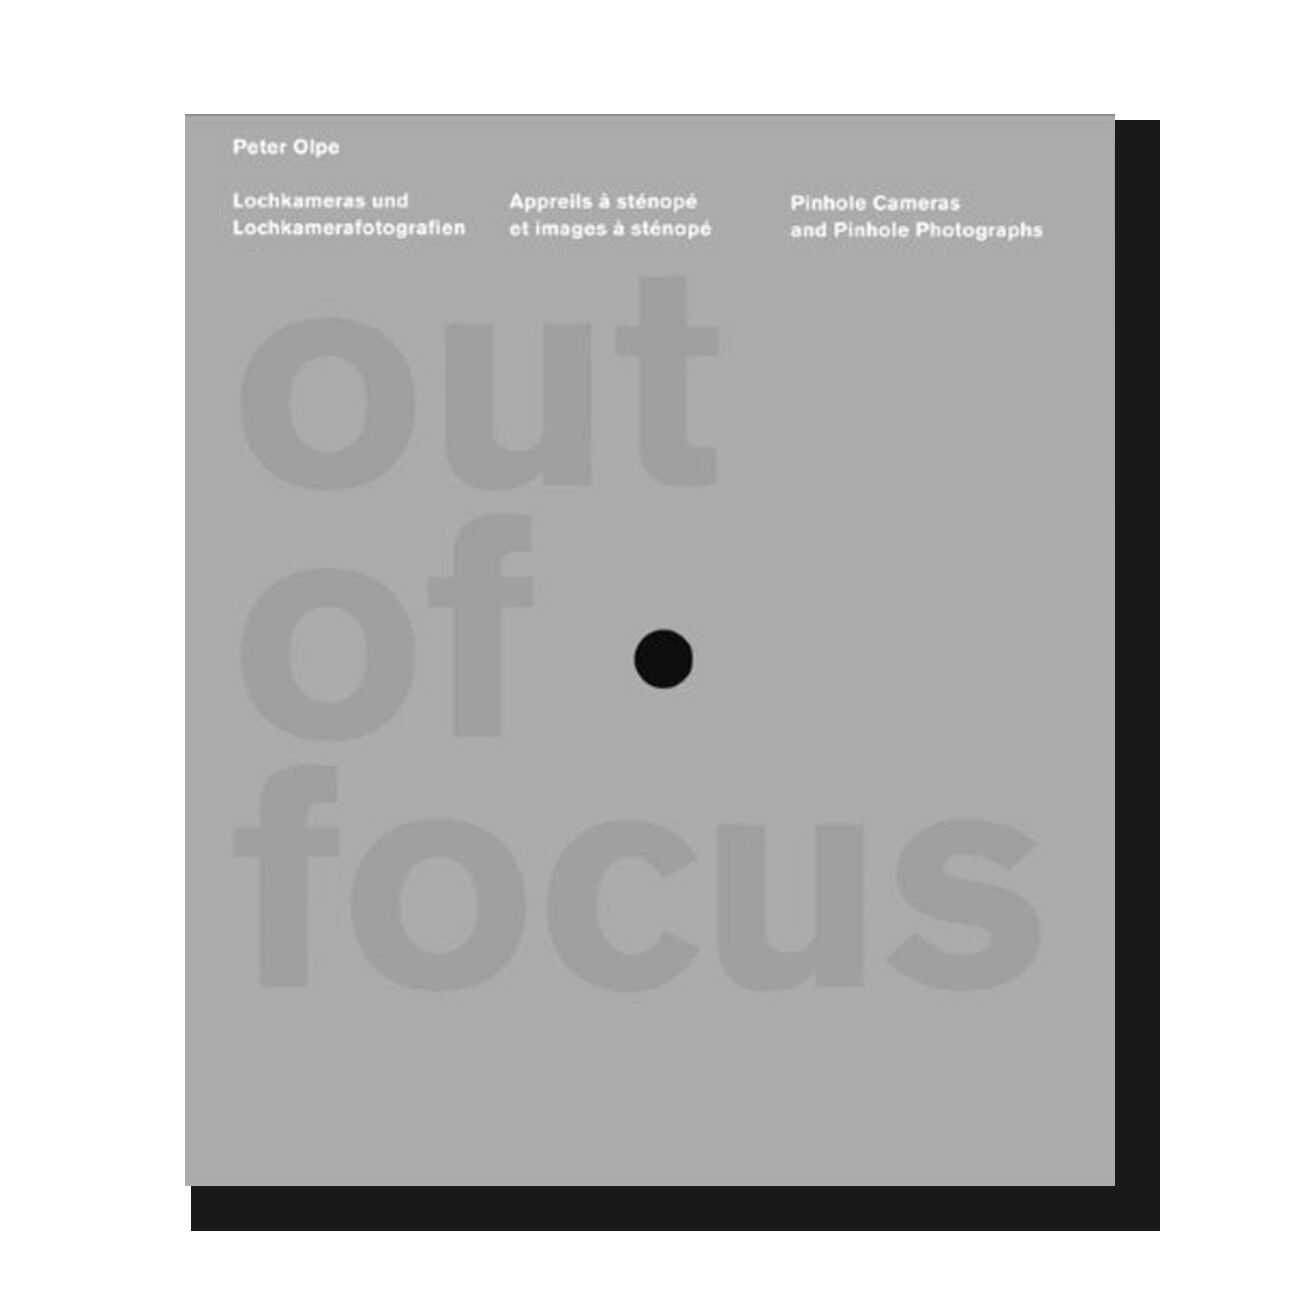 Out of Focus: Pinhole Cameras and their Pictures